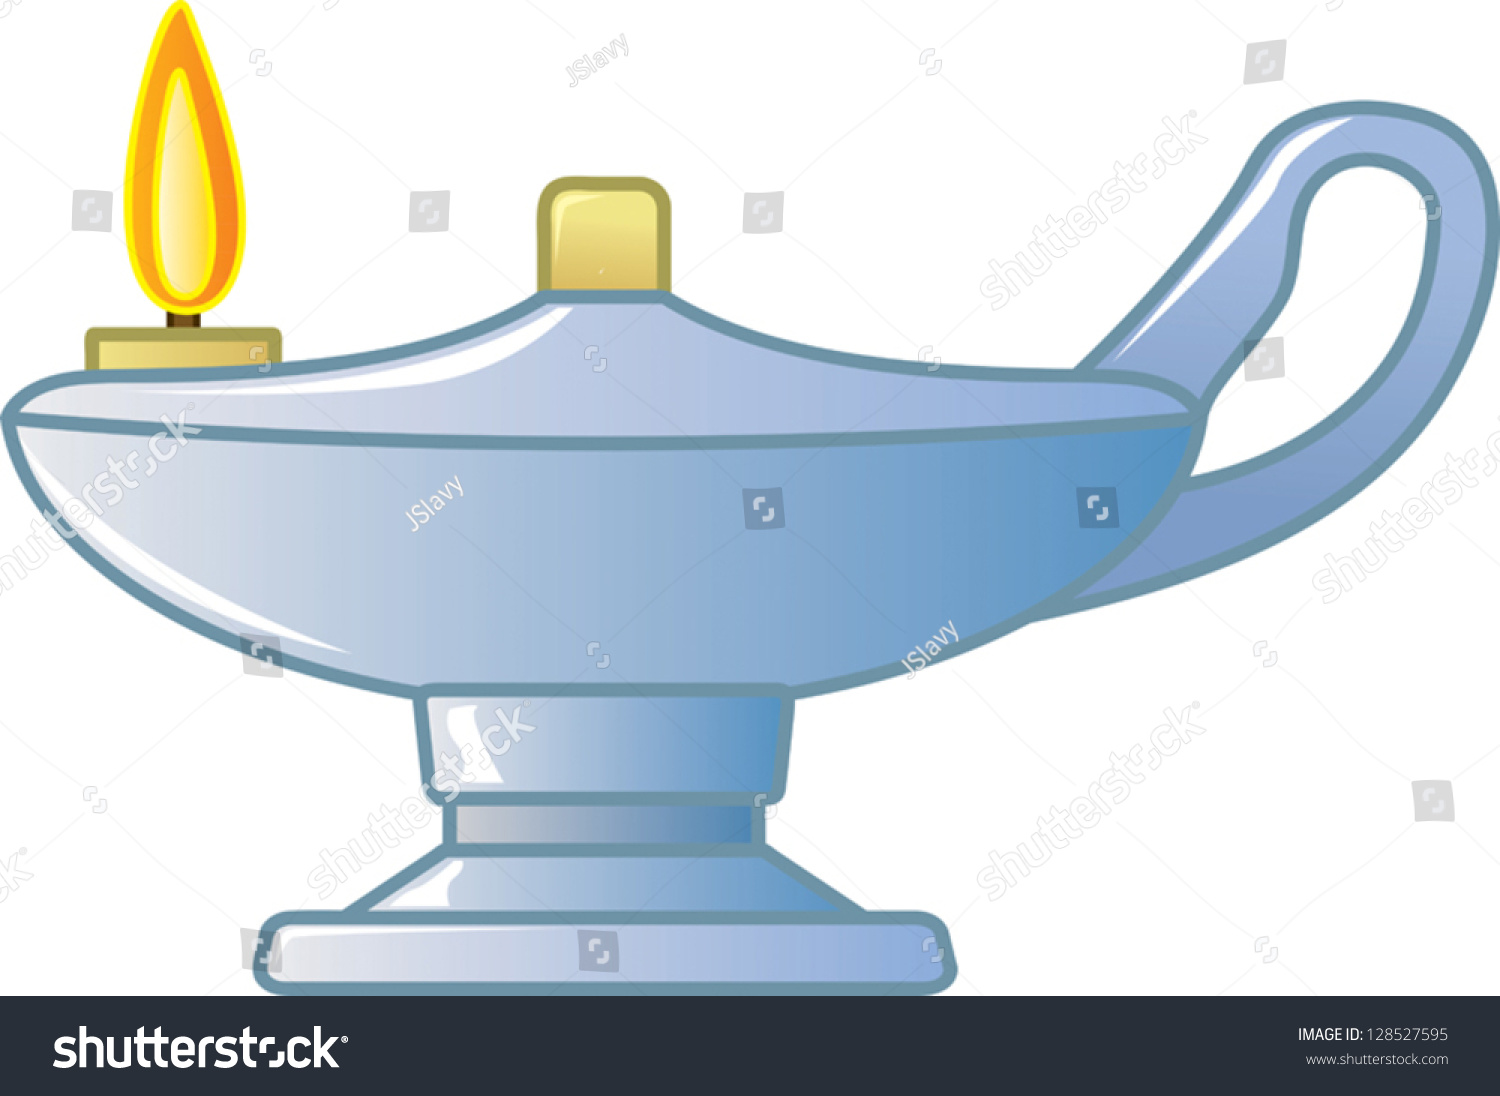 Florence nightingale oil lamp which symbol stock vector 128527595 the florence nightingale oil lamp which is a symbol for the profession of nursing buycottarizona